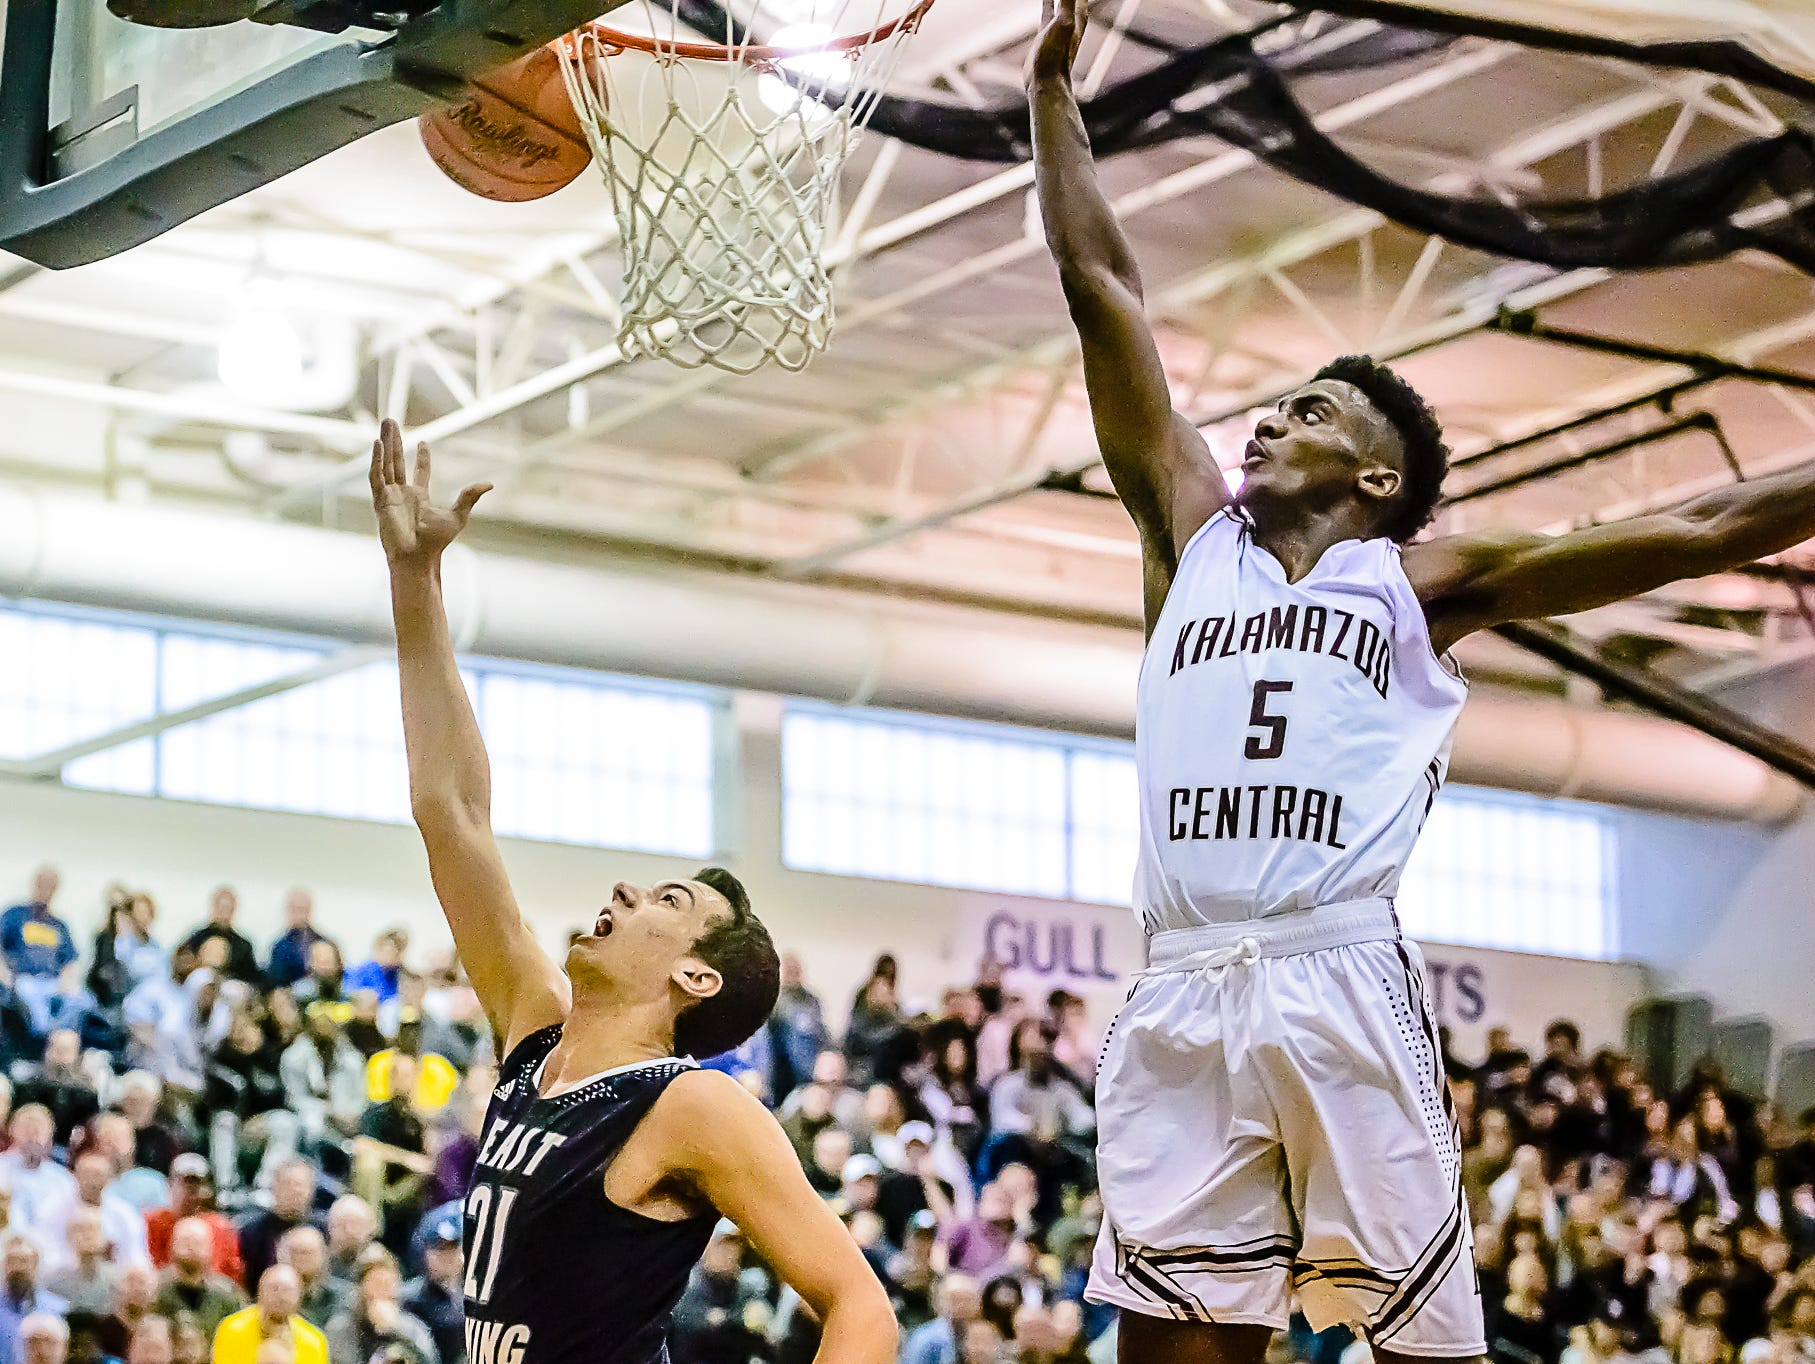 Westin Myles ,left, of East Lansing clangs the ball off the rim as he attempts a layup while being defended by Ontarion Burnett ,5, of Kalamazoo Central late in the 3rd quarter of their Class A Regional Final game with Kalamazoo Central leading 47-34 Wednesday March 15, 2017 at Gull Lake High School in Richland. KEVIN W. FOWLER PHOTO